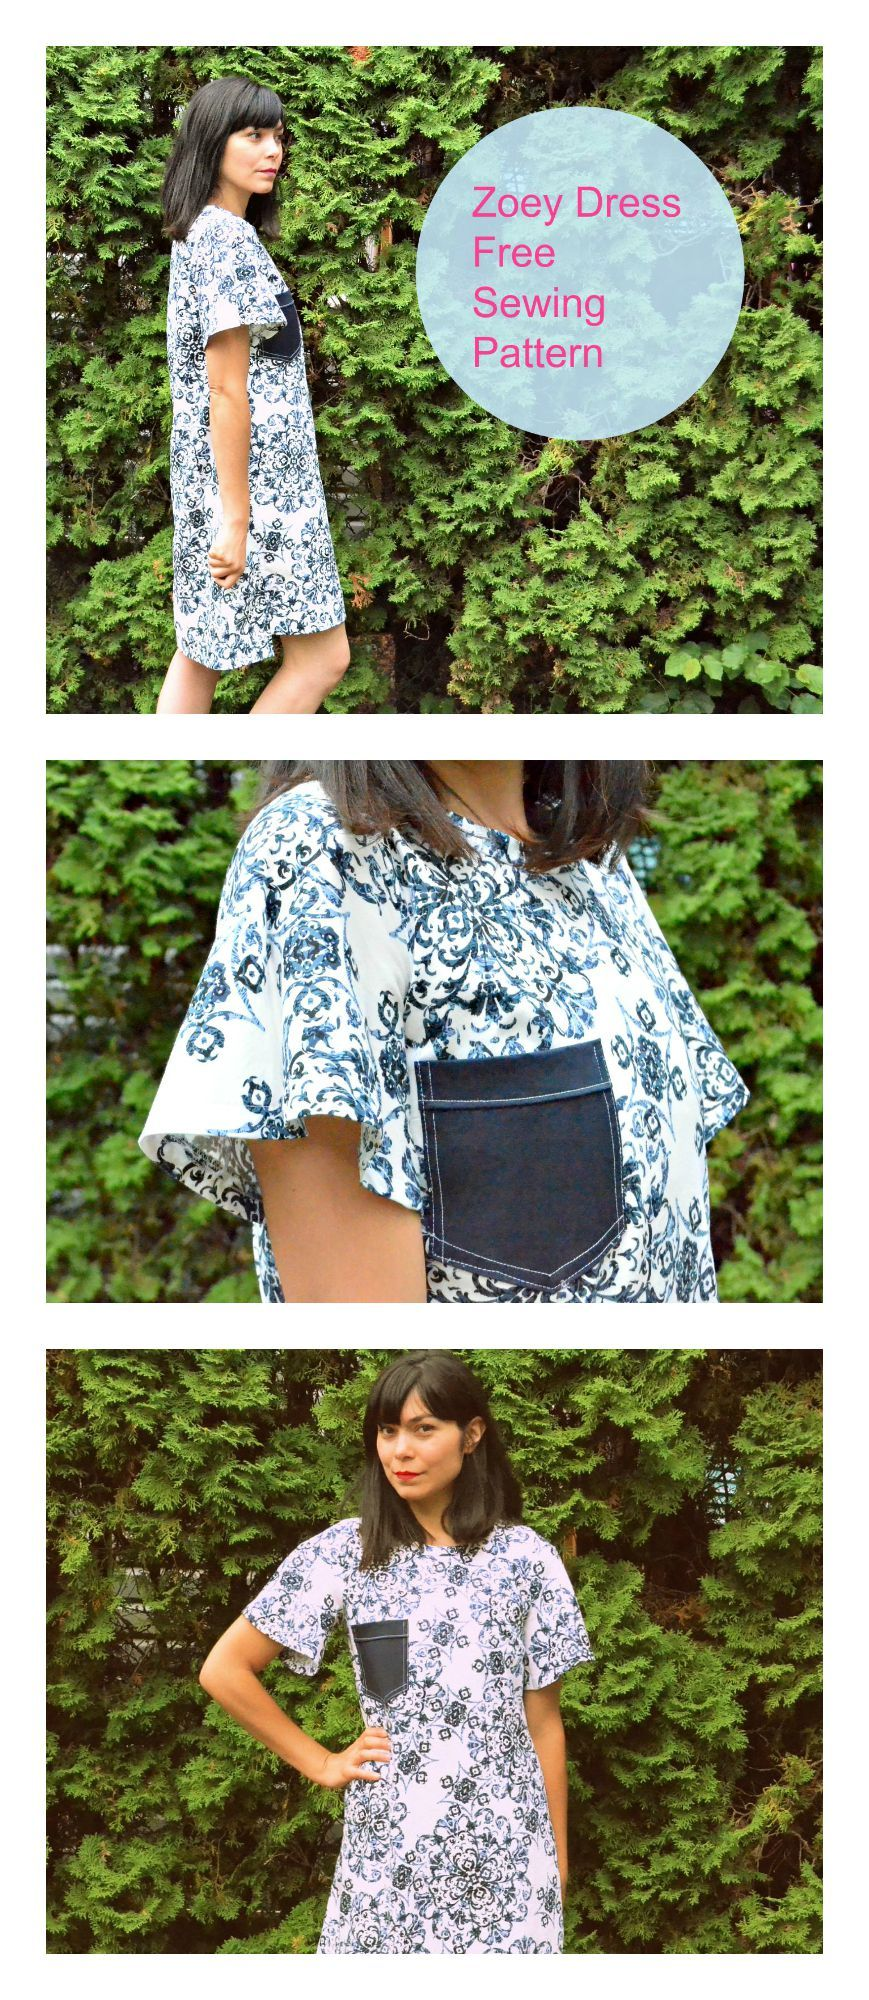 Free Sewing Pattern: Zoey Dress - On the Cutting Floor: Printable ...